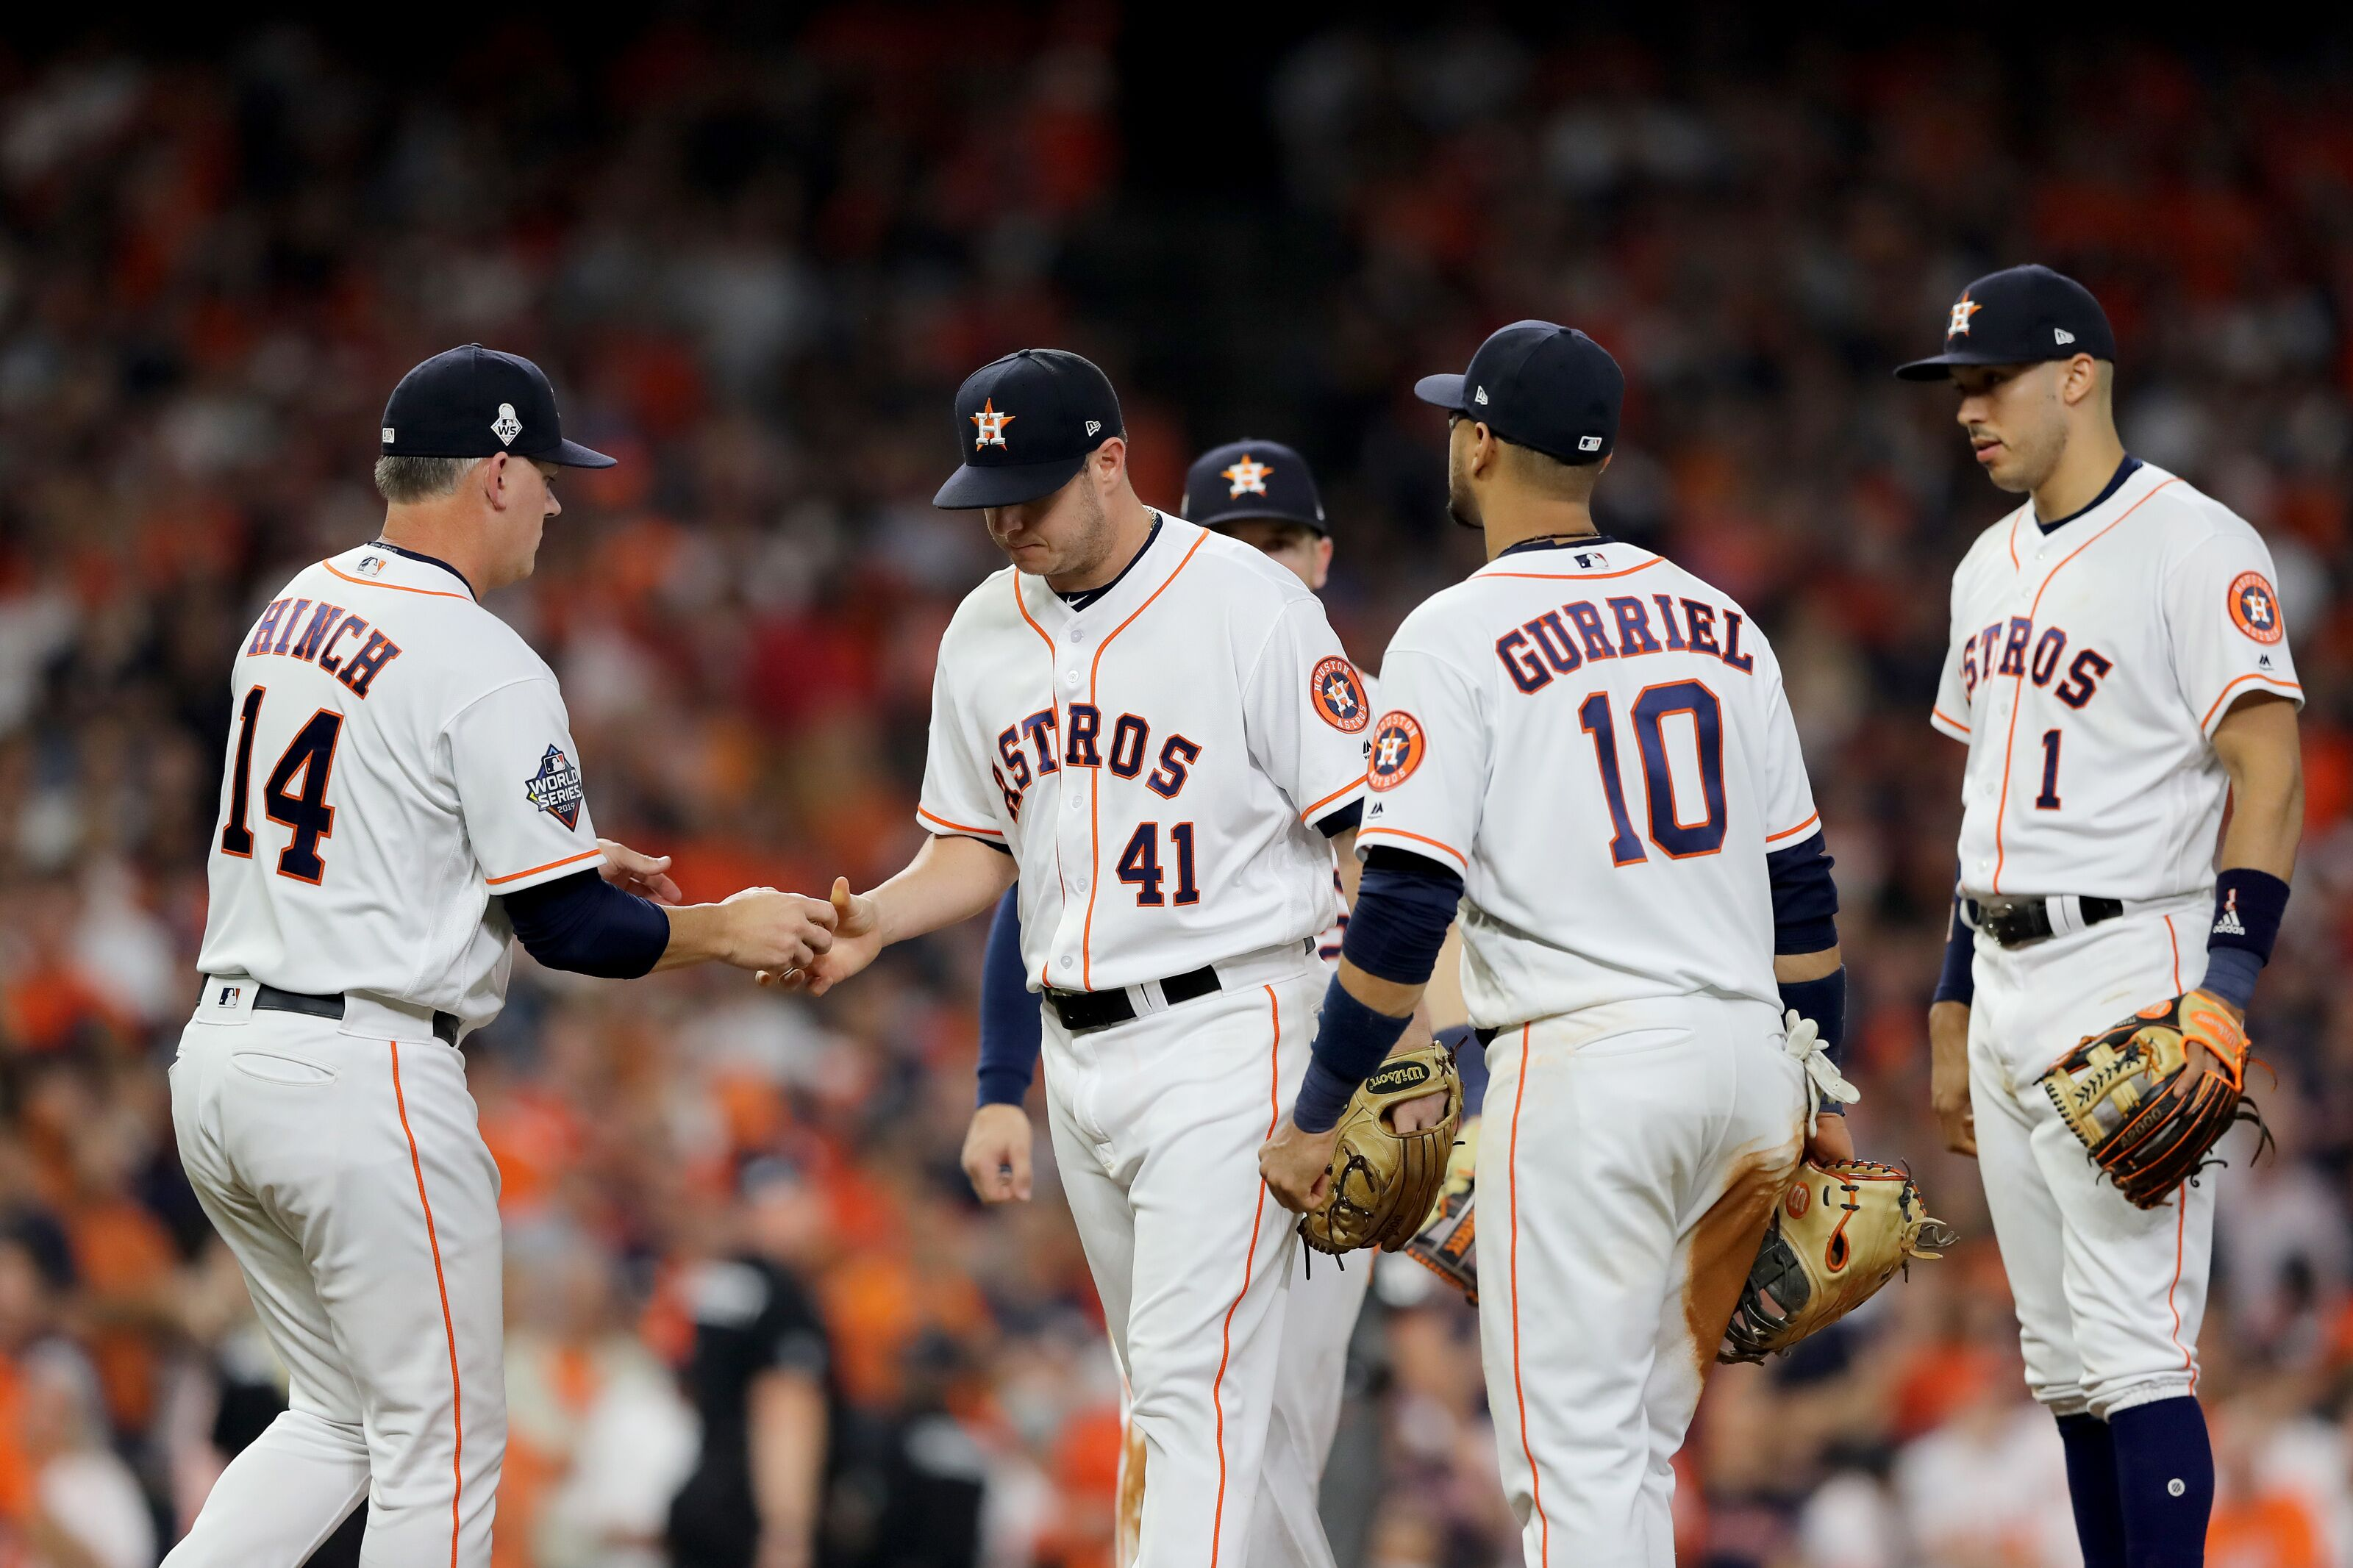 Astros: Brad Peacock may be out of starting competition